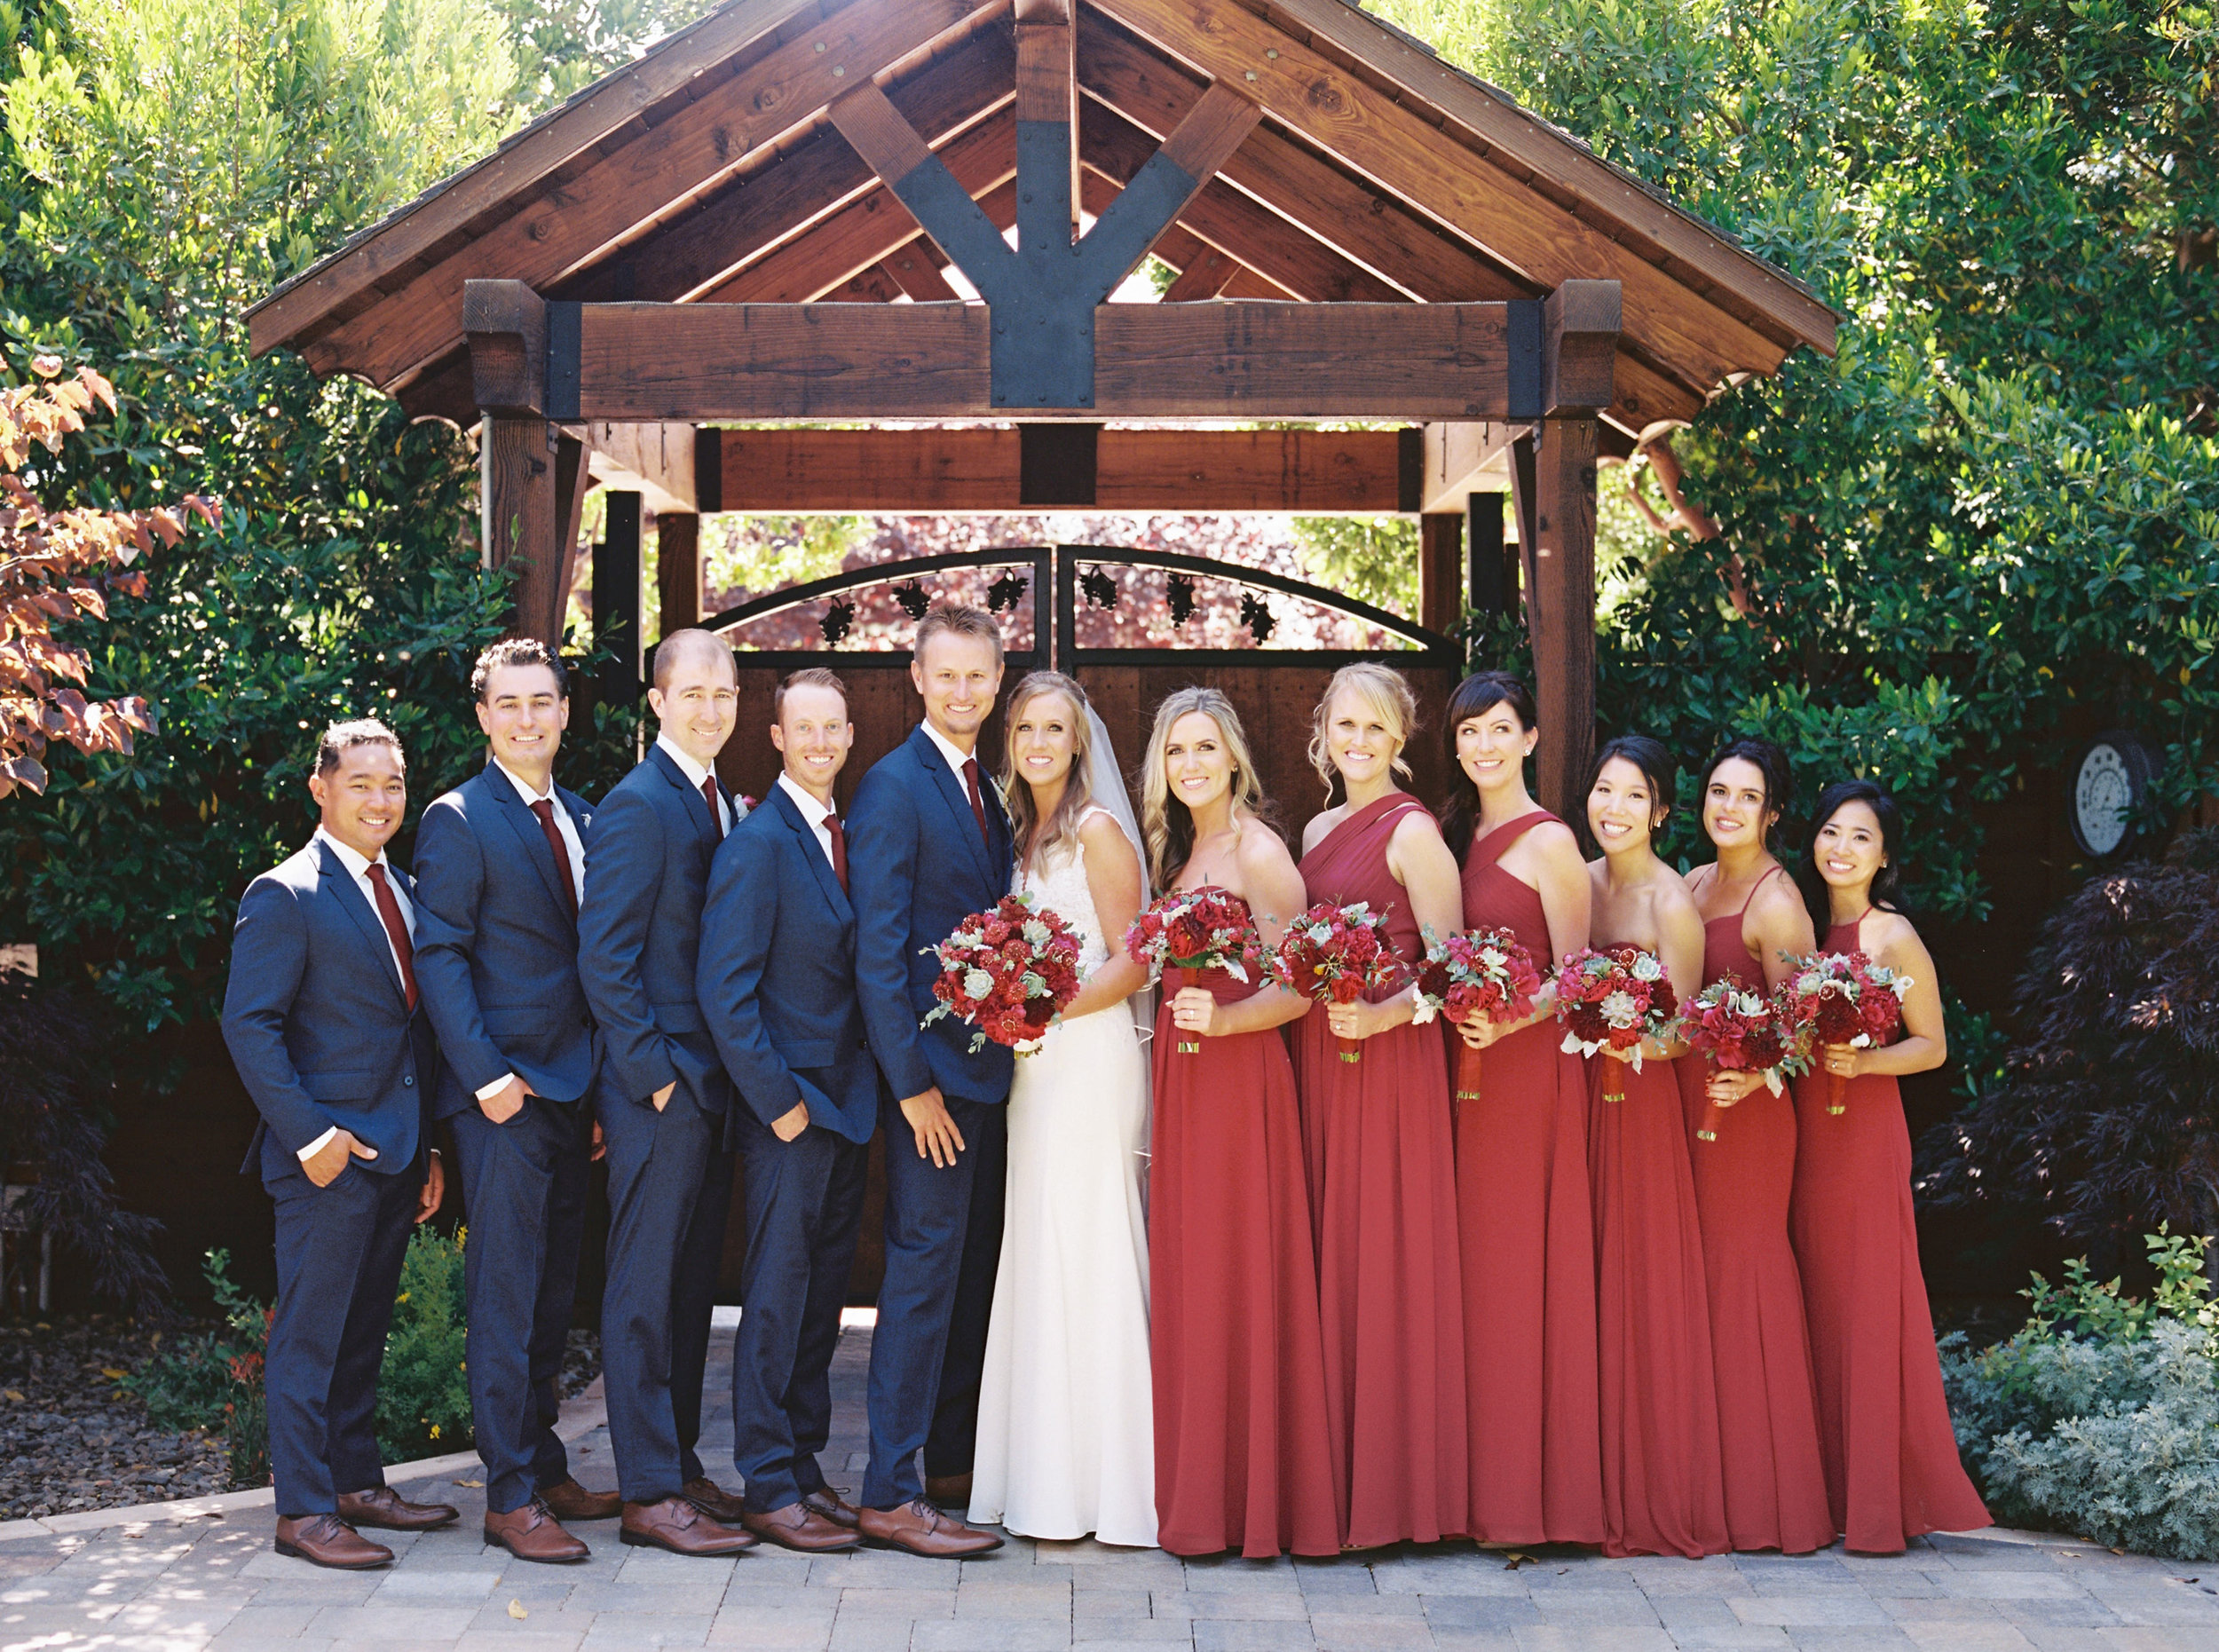 Crooked-vine-winery-wedding-in-livermore-california-7.jpg